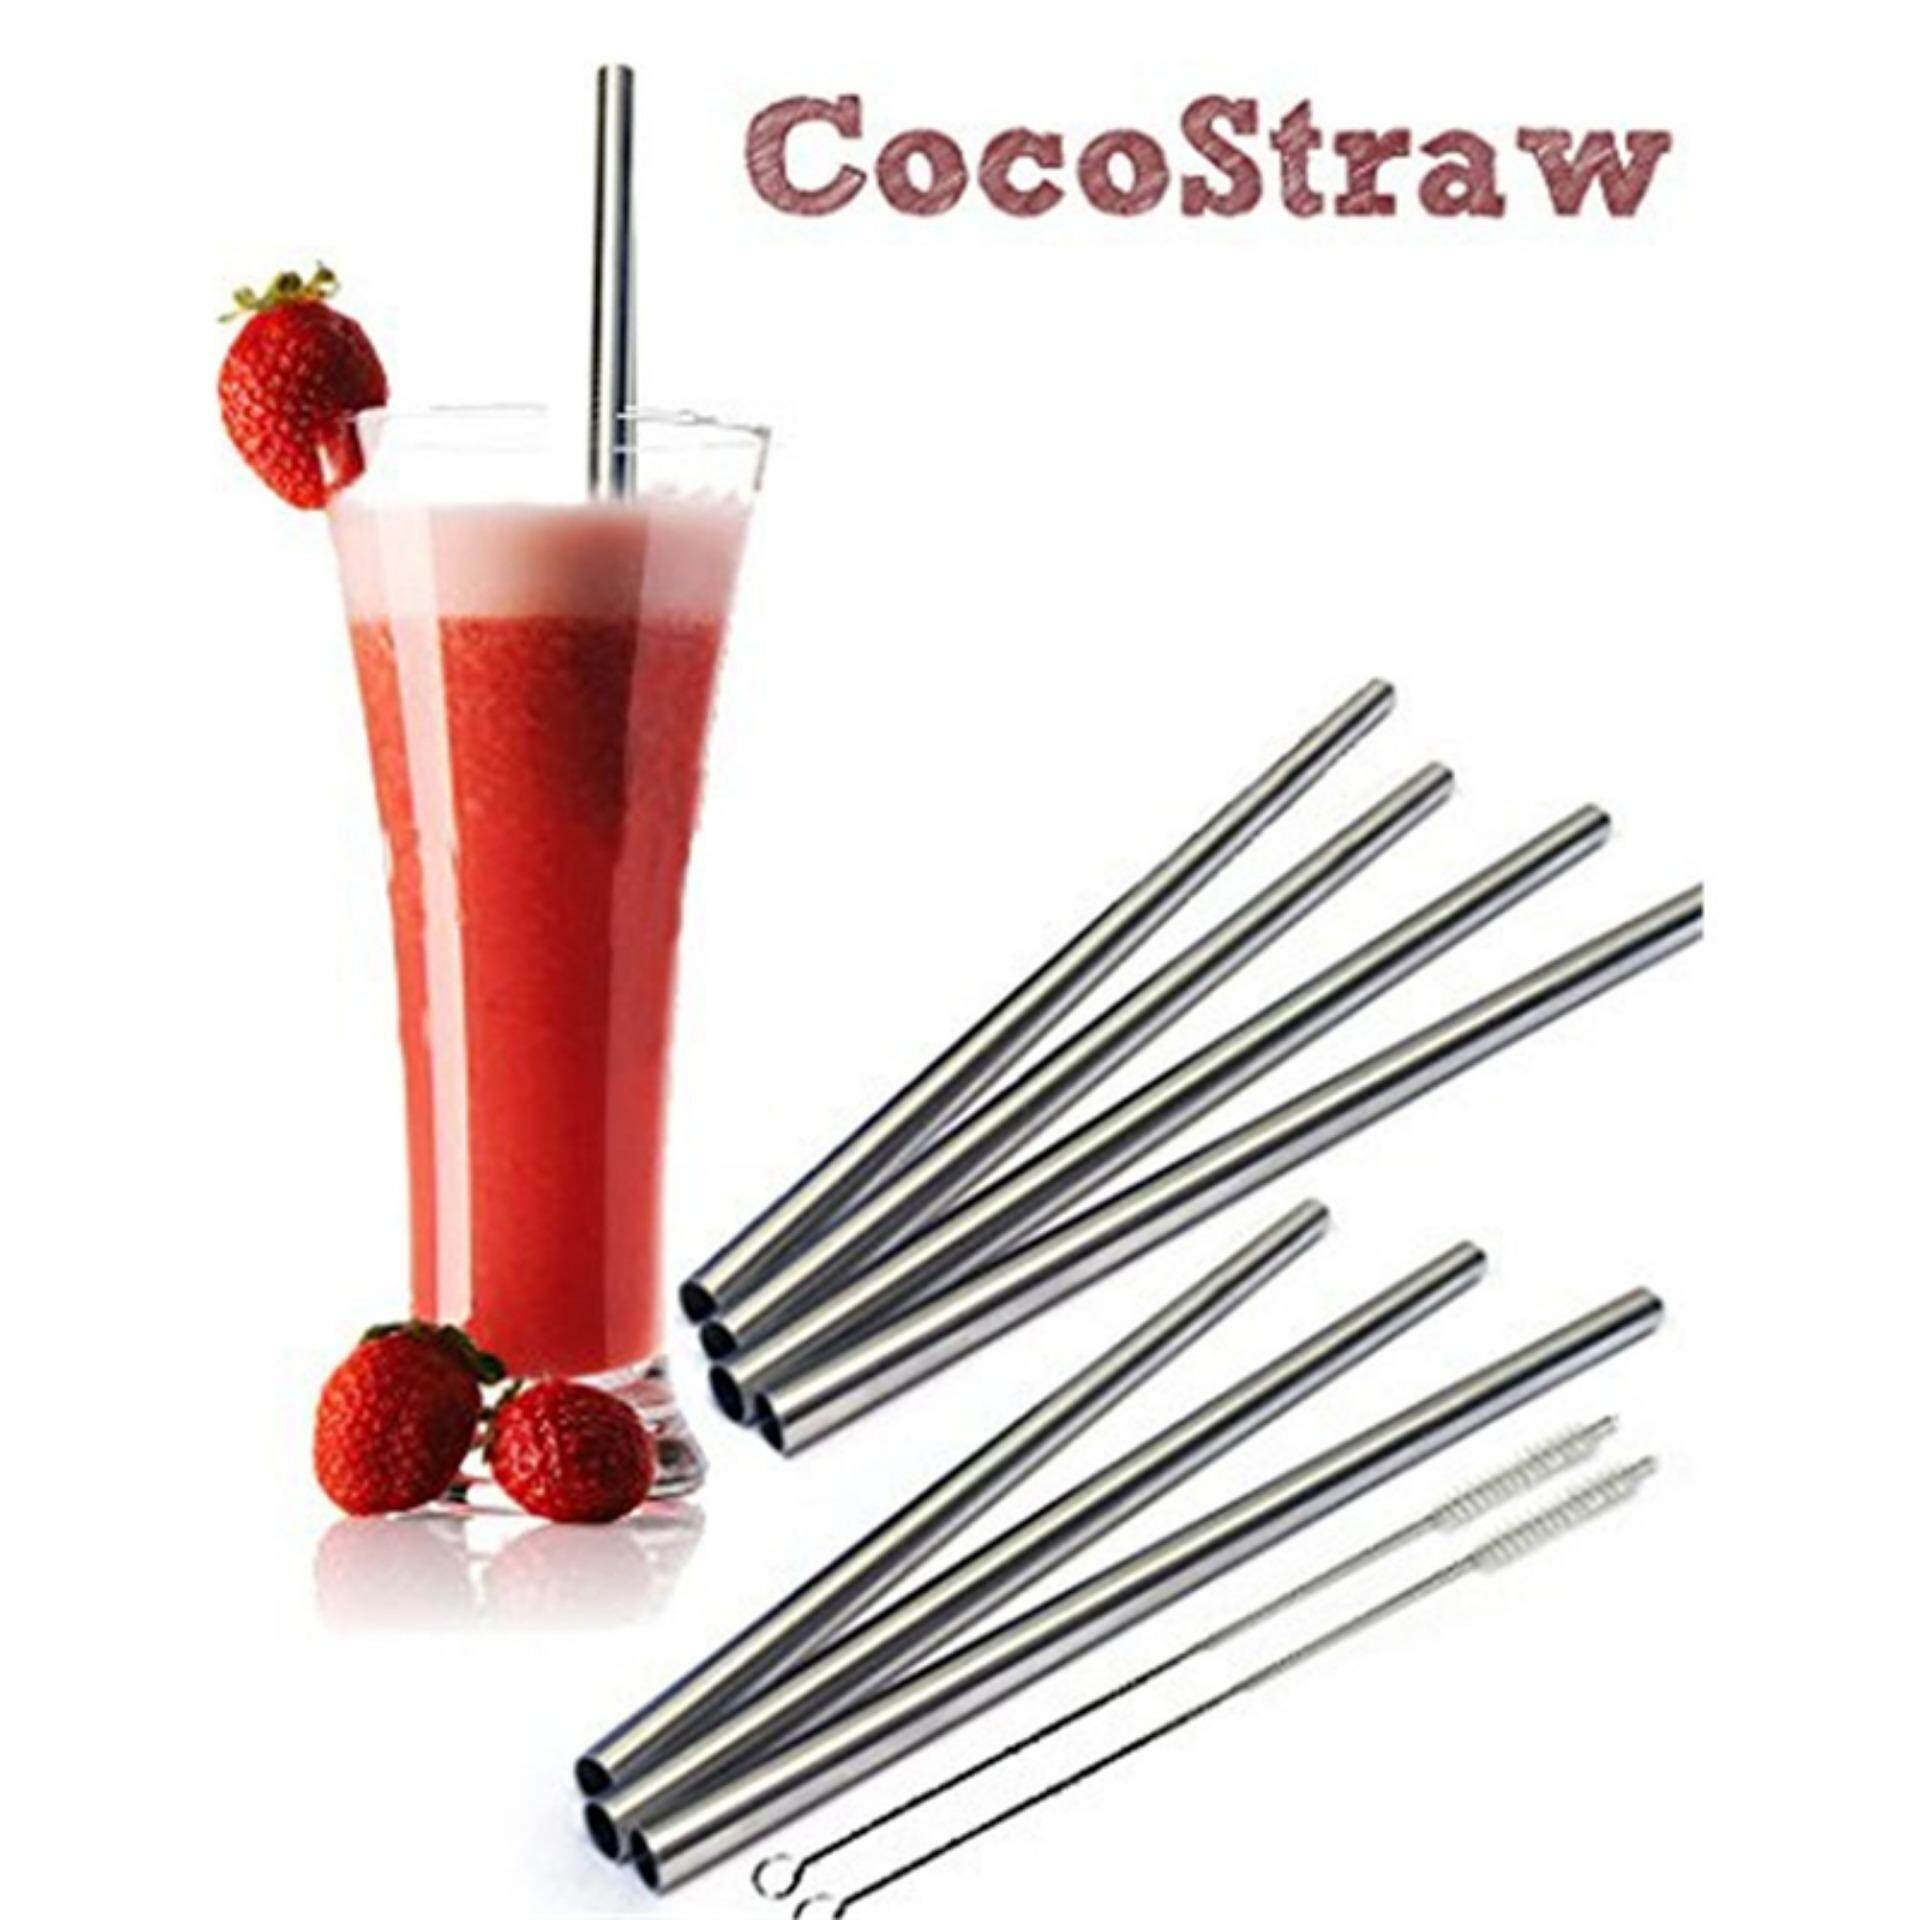 8X Stainless Steel Straws Set Reusable 8.5 inch Short Frozen Drinking Straws Silver - intl